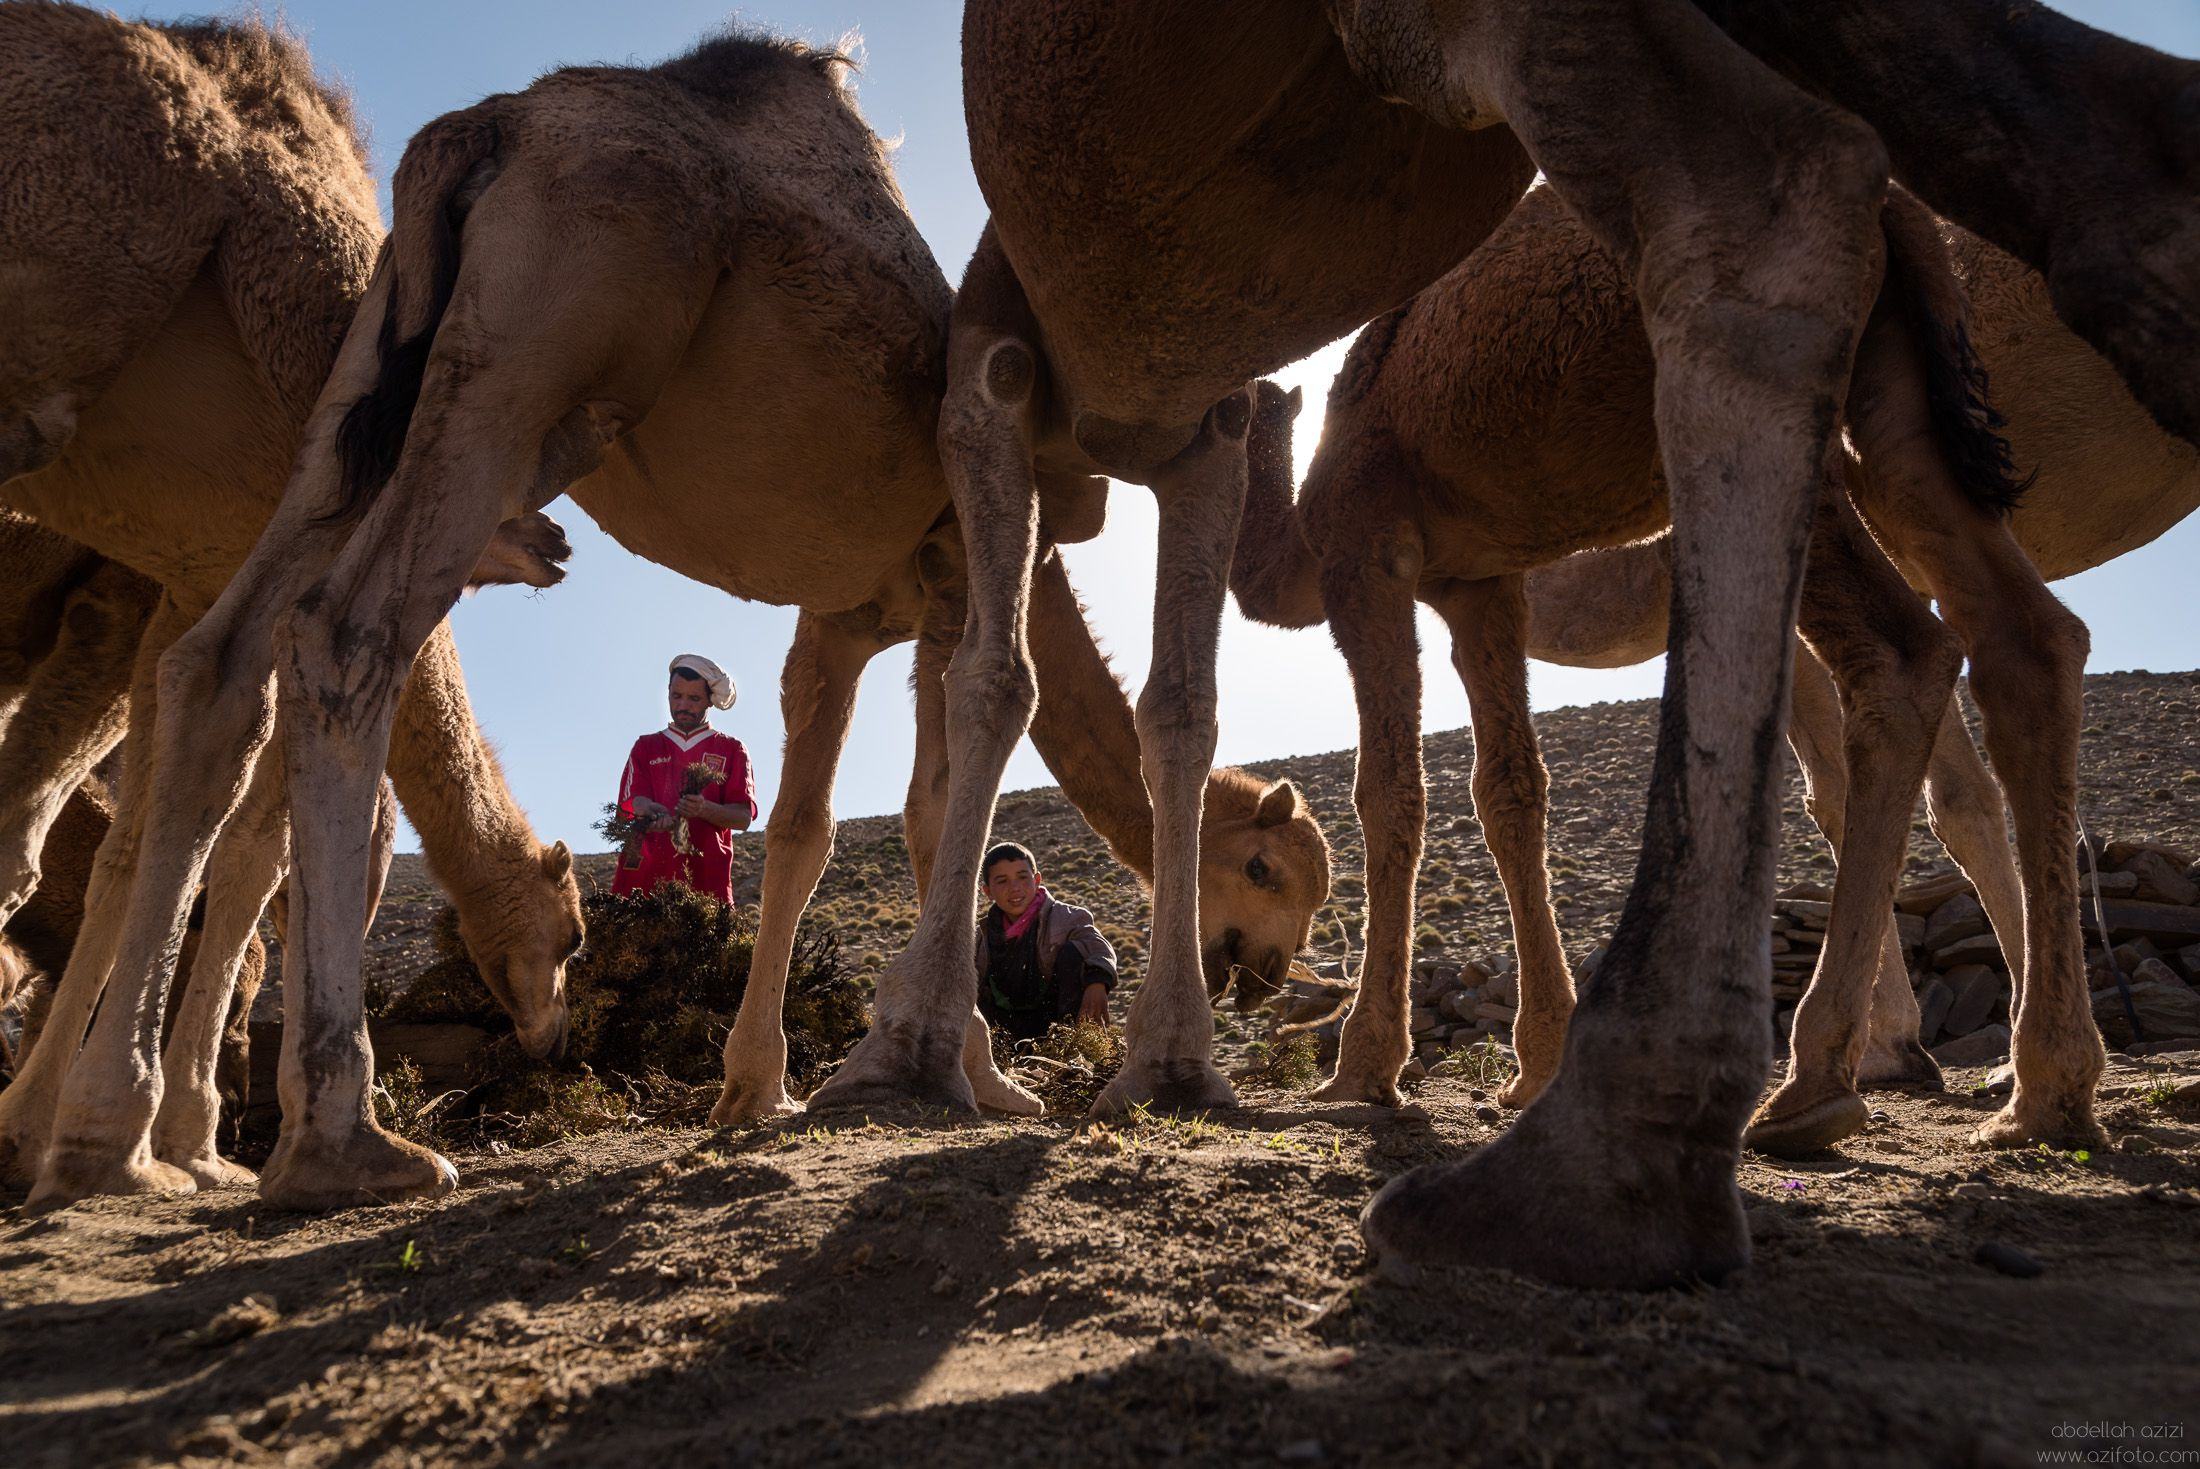 Feeding camels - Ait Atta Nomads